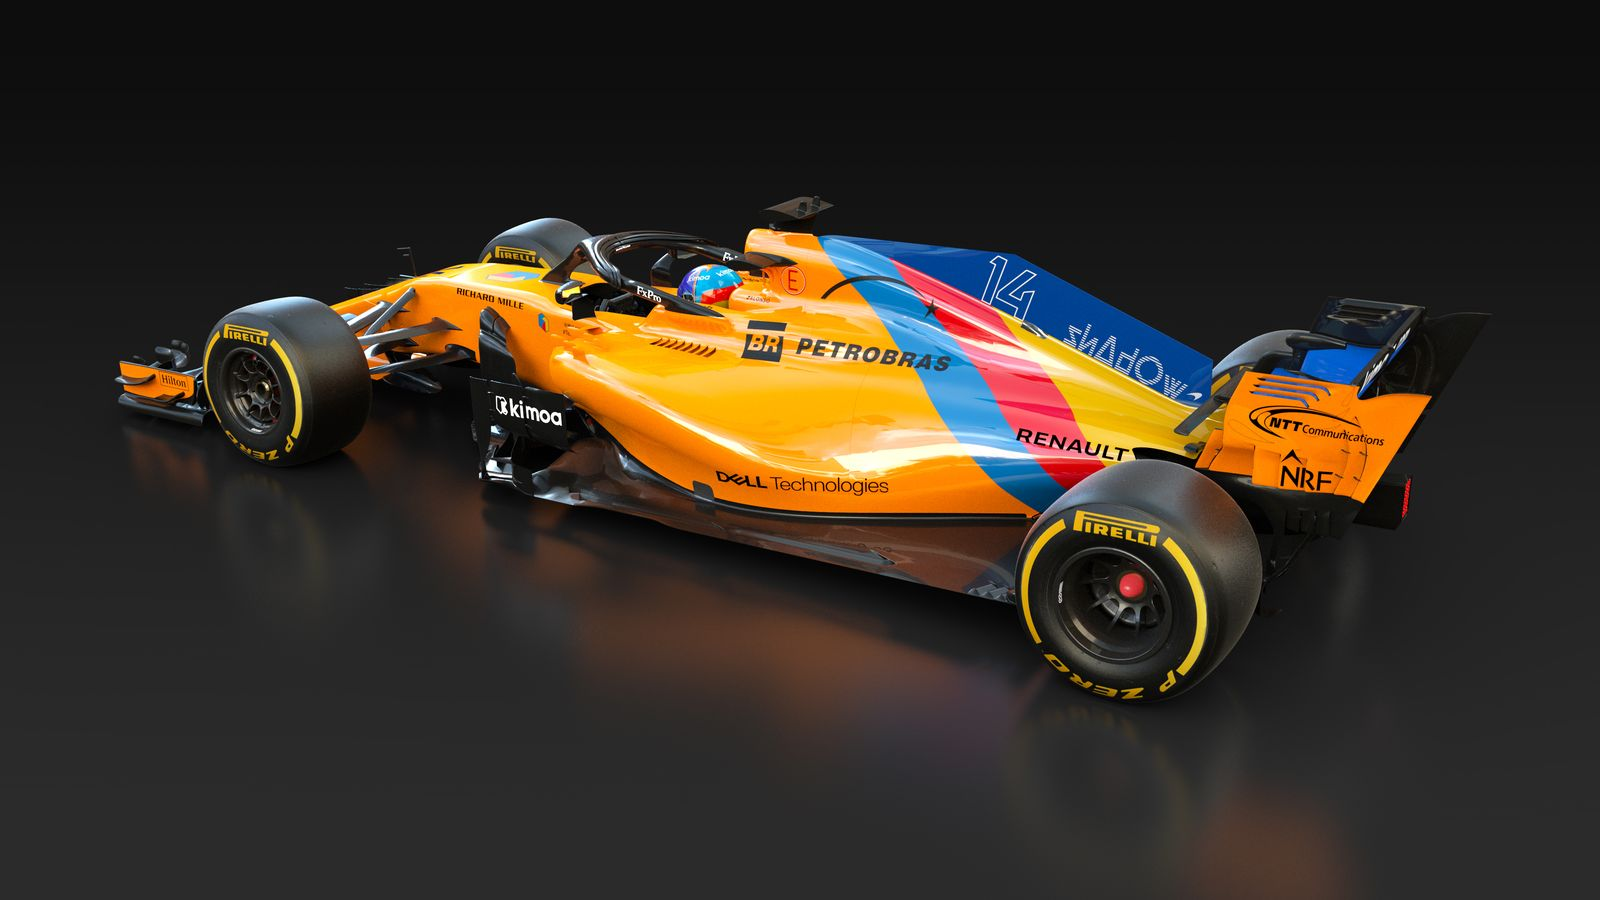 mclaren reveal one off livery for alonso s final race in abu dhabi formula 1. Black Bedroom Furniture Sets. Home Design Ideas